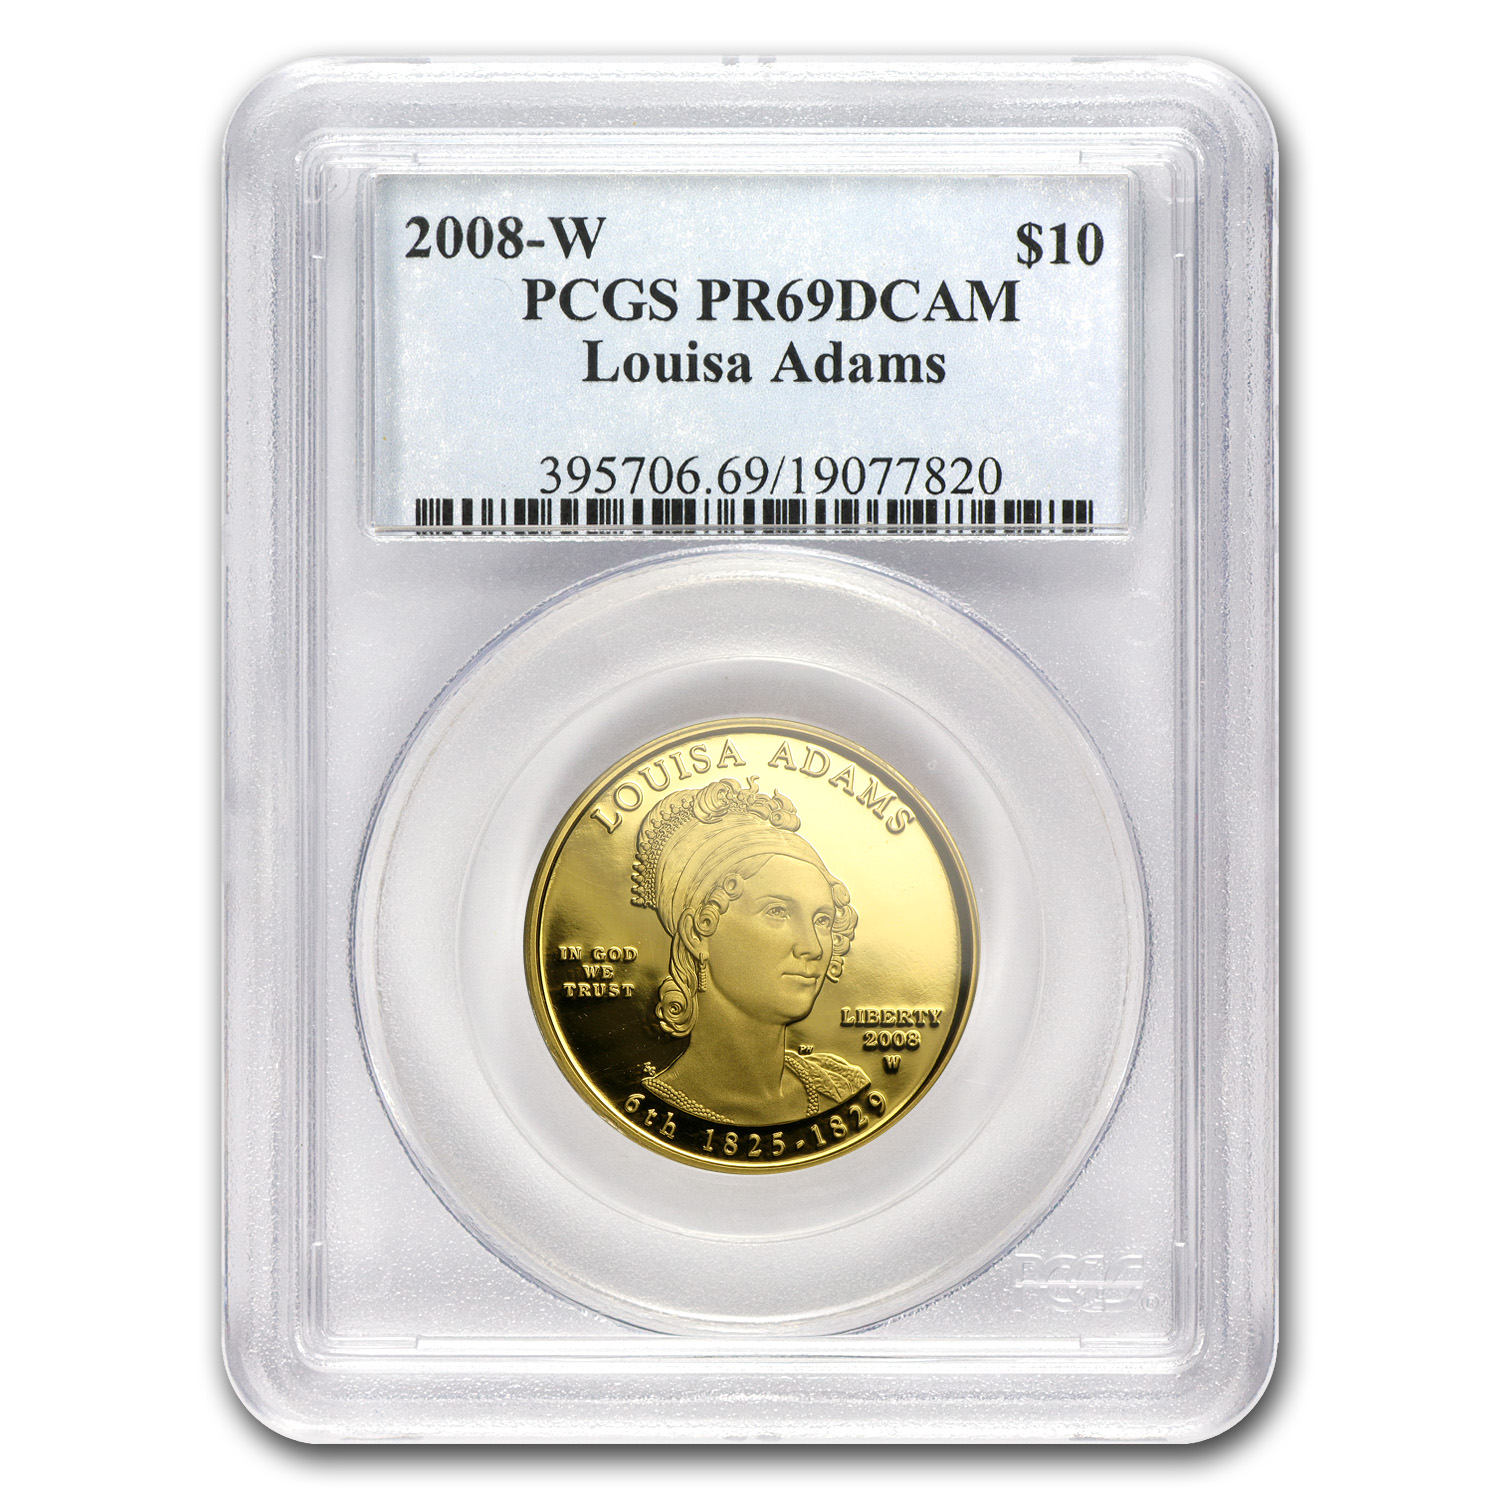 2008-W 1/2 oz Proof Gold Louisa Adams PR-69 PCGS